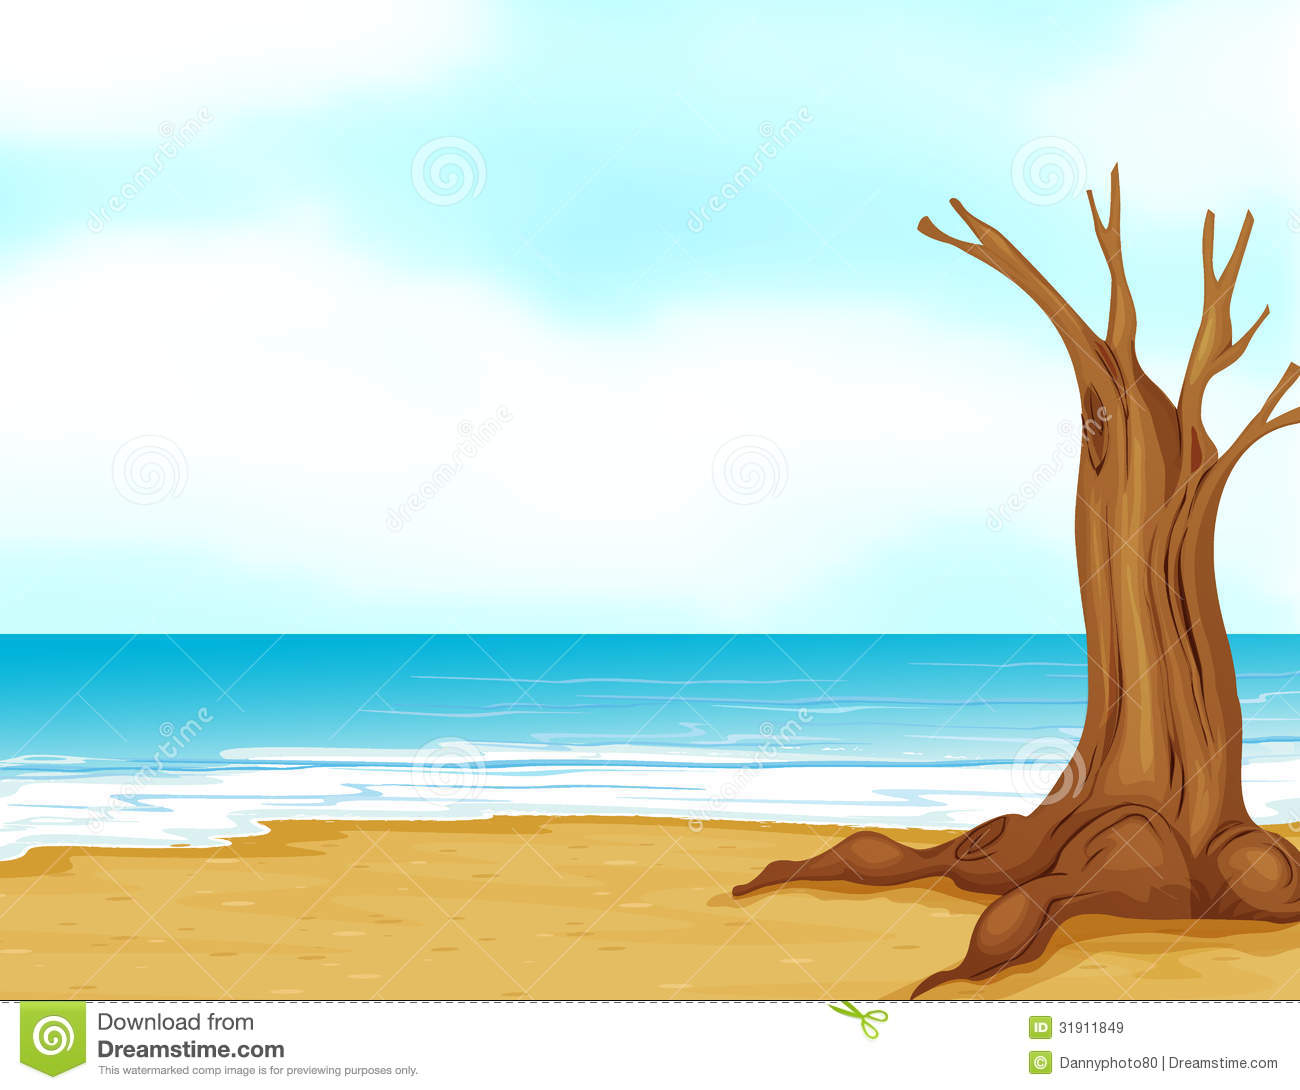 A Tree Without Leaves Near The Beach Royalty Free Stock Images.